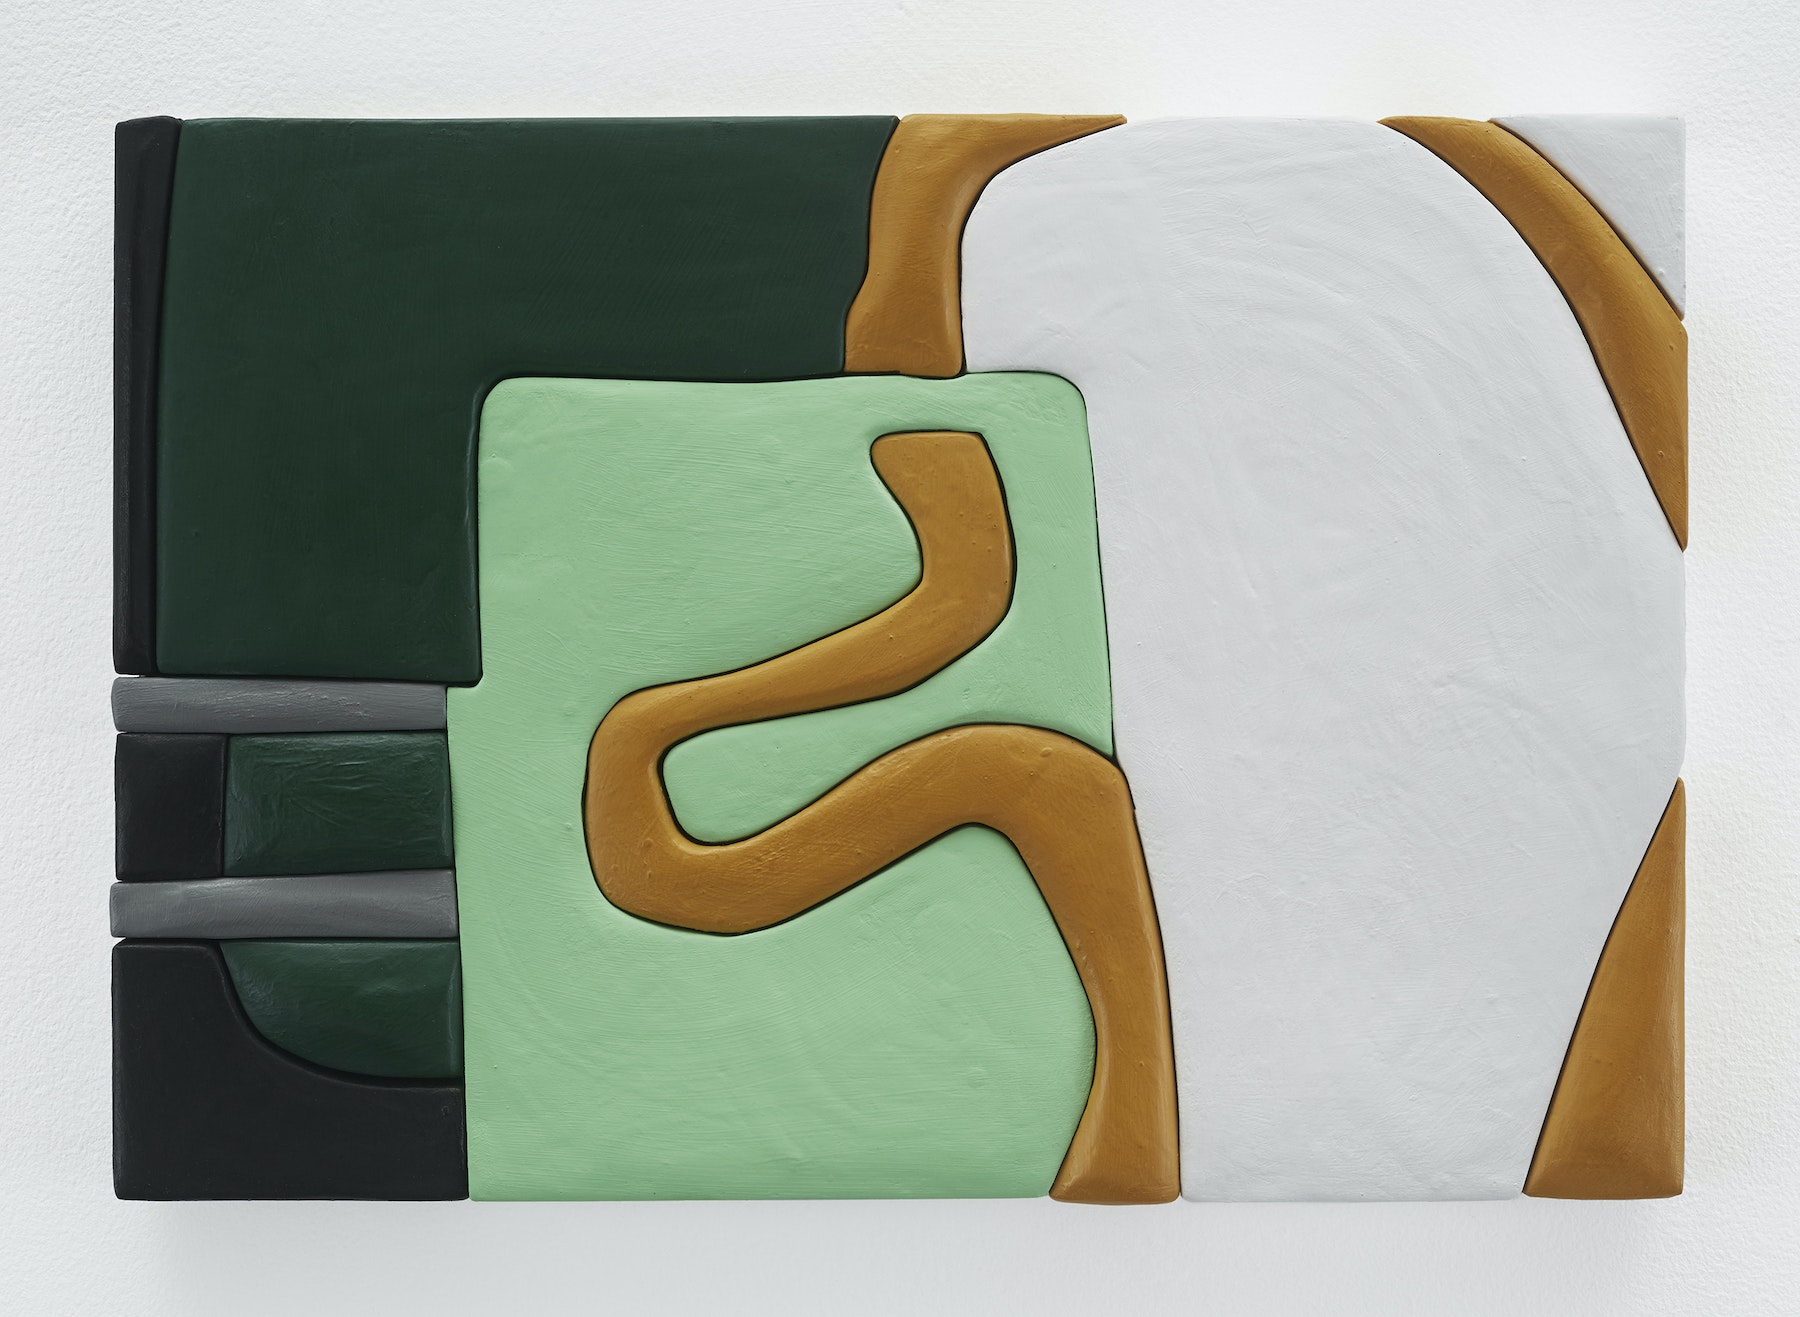 "Sadie Benning ""Untitled 11x16 (TT),"" 2019 Wood, aqua resin, casein, and acrylic gouache 11 x 16"" [HxW] (27.94 x 40.64 cm) Inventory #BEN847 Courtesy of the artist and Vielmetter Los Angeles Photocredit: Chris Austin"